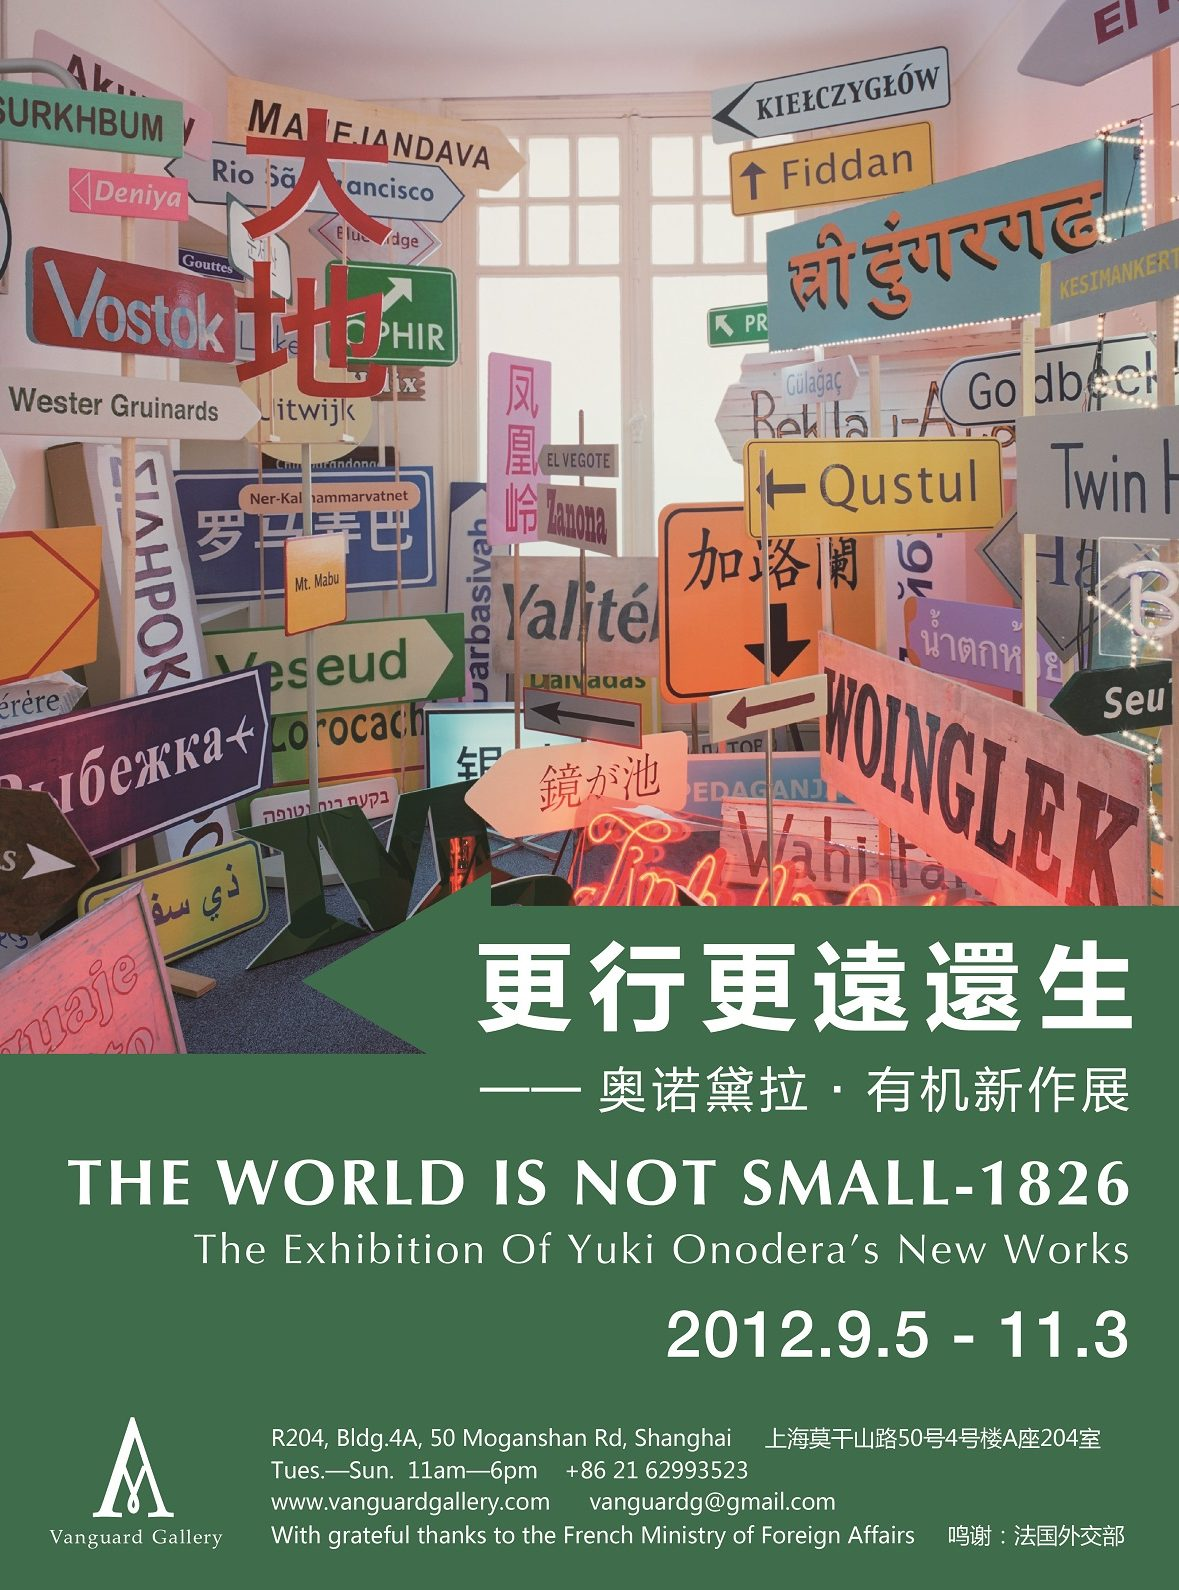 The Exhibition of Yuki Onodera's New Works: The World is Not Small-1826